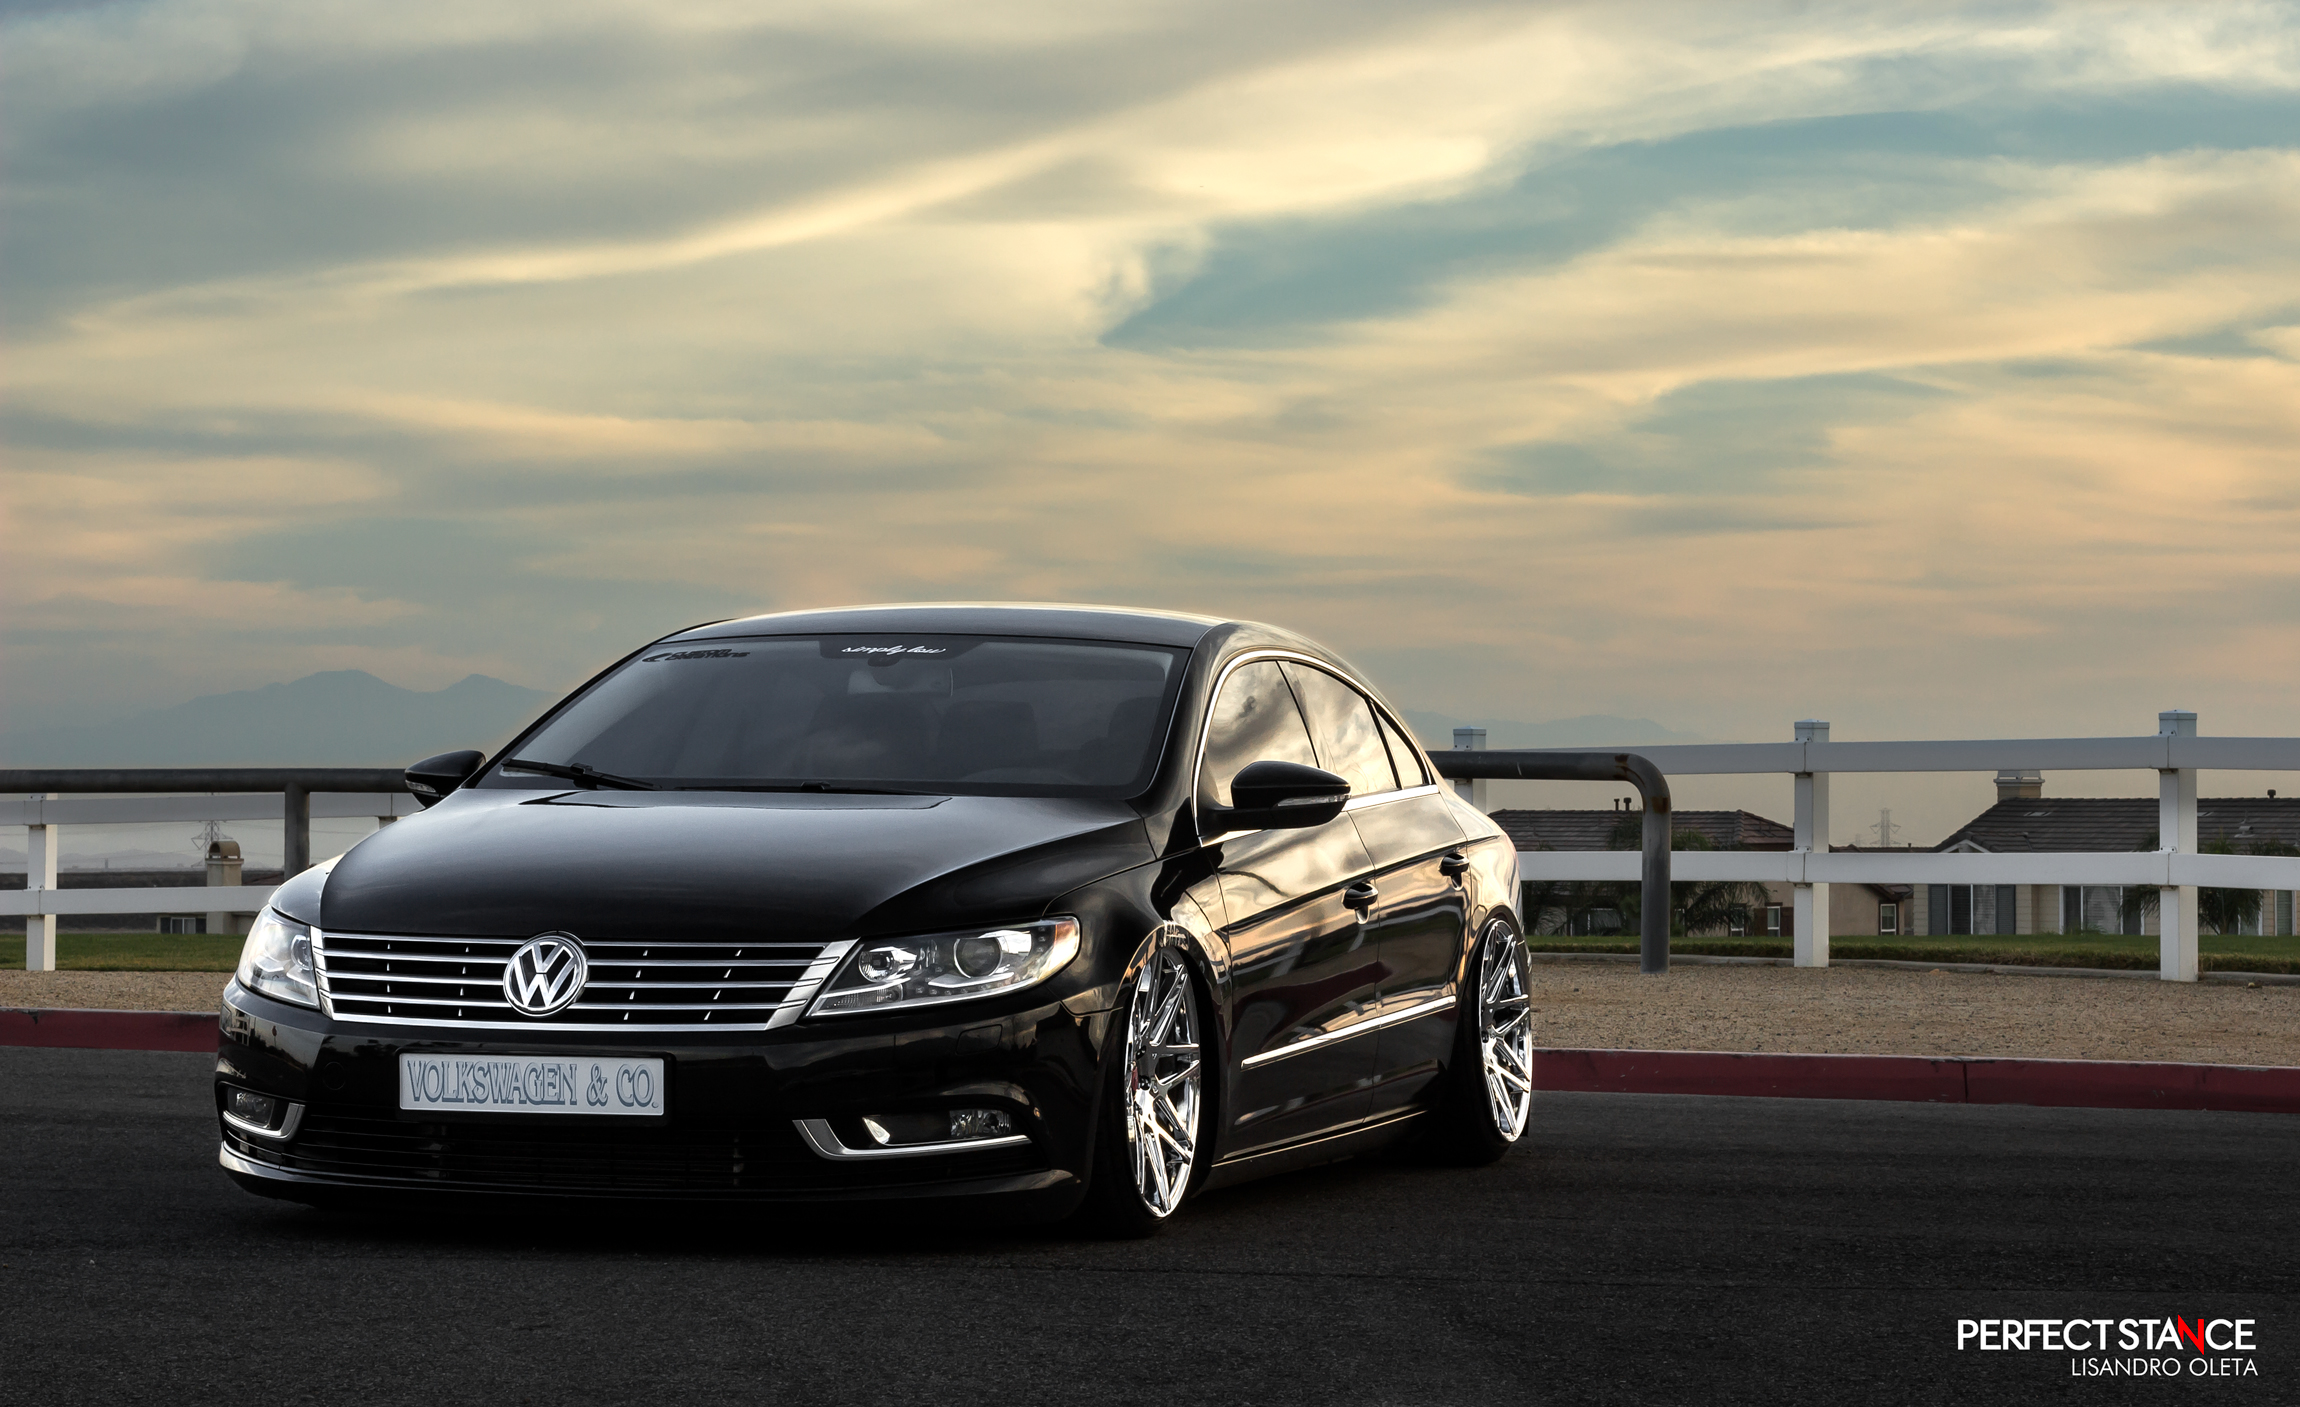 Volkswagen cc photo - 8